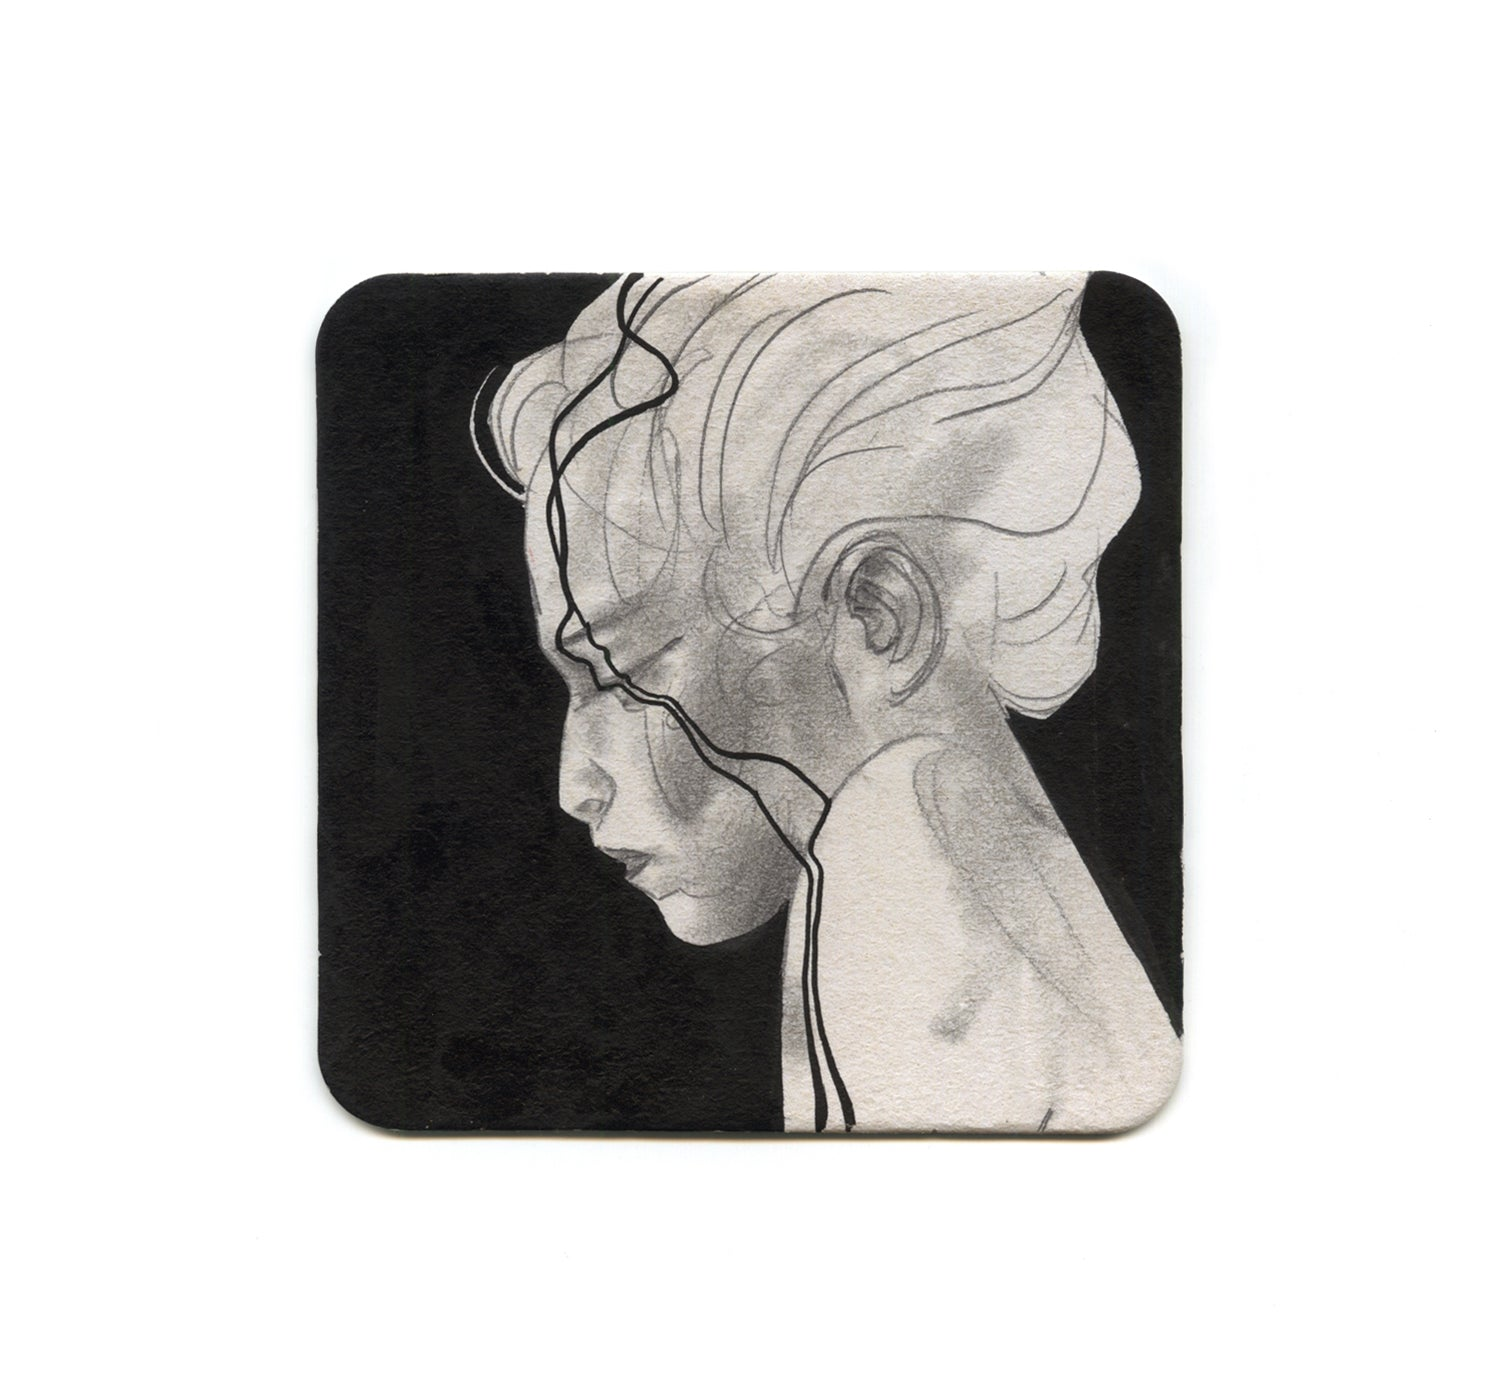 S2 Eliza Ivanova - Untitled 2 Coaster